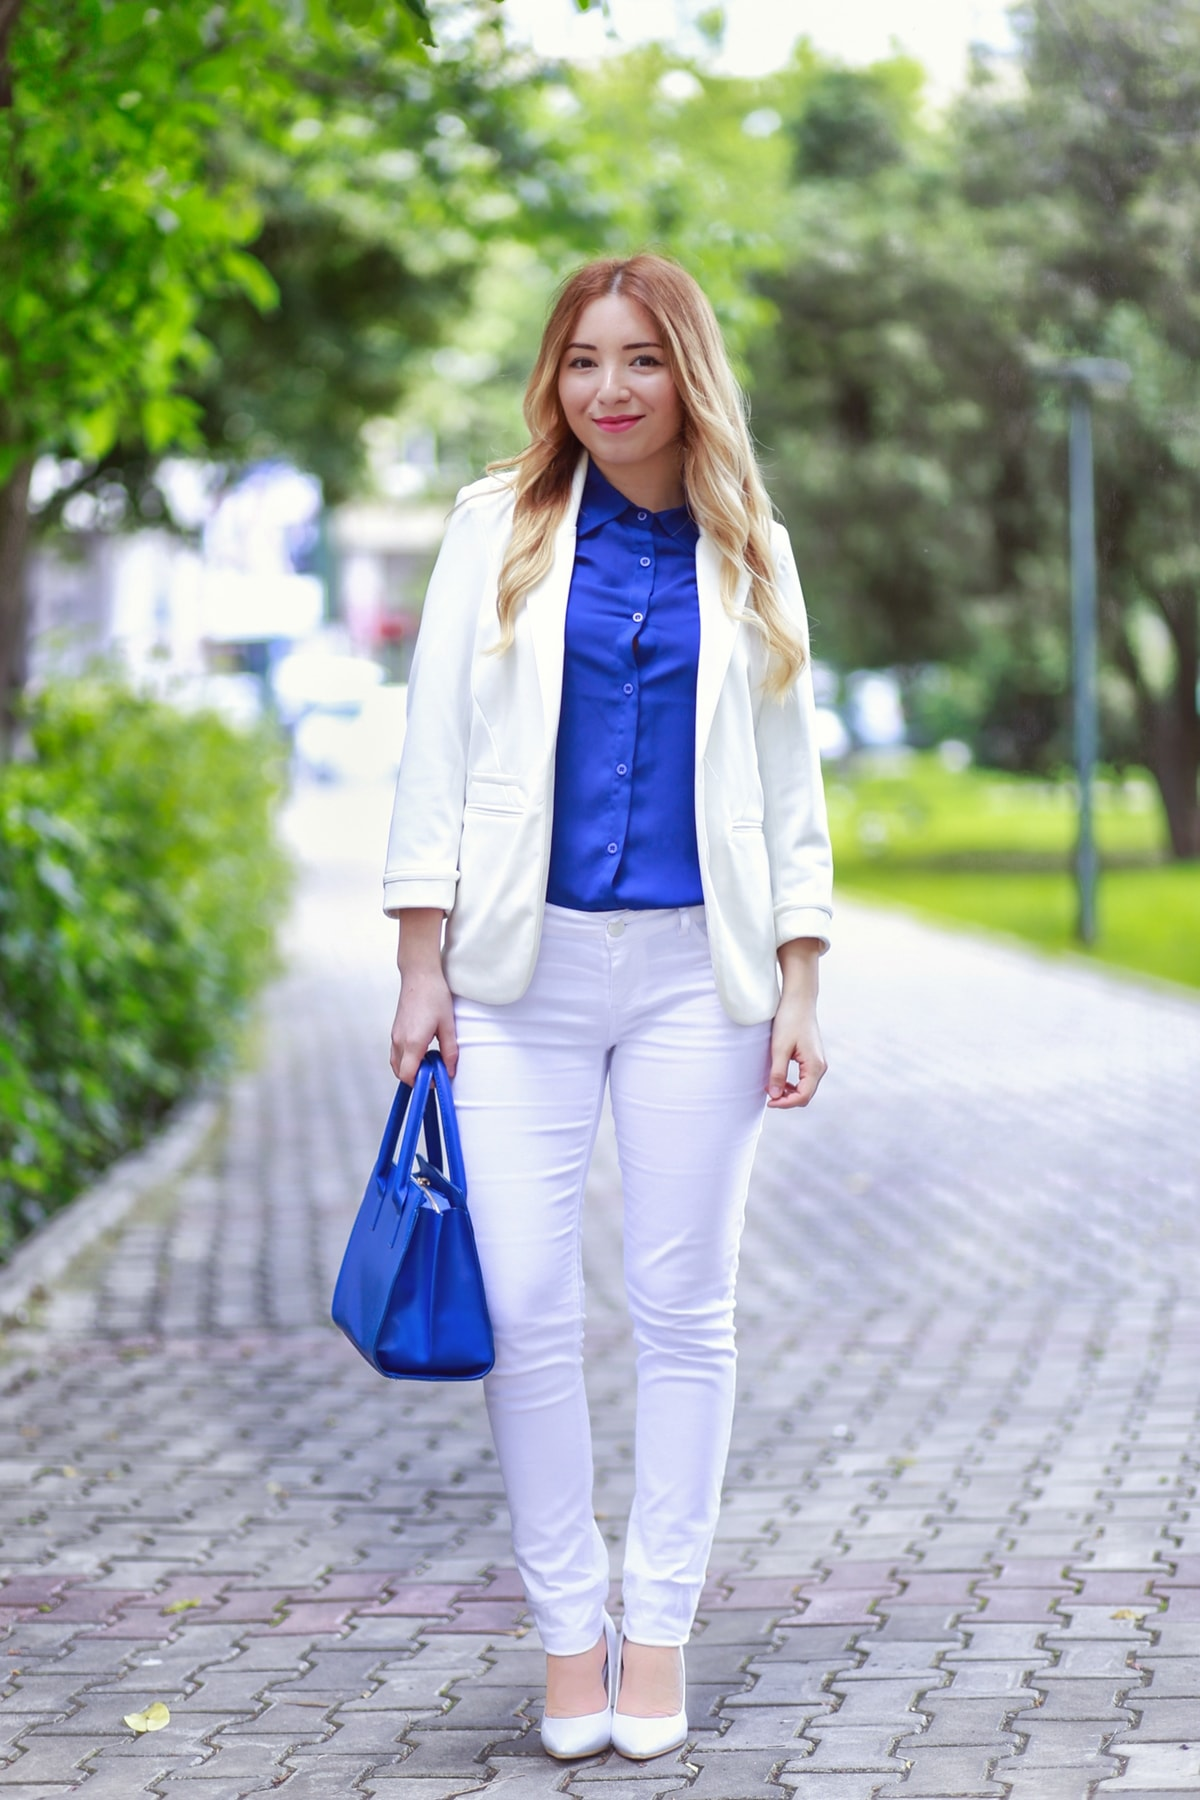 street style, blue shirt, blue bag, white shoes, white blazer, white skinny jeans, pink basis, romwe, shein, andreea ristea, fashion, ootd